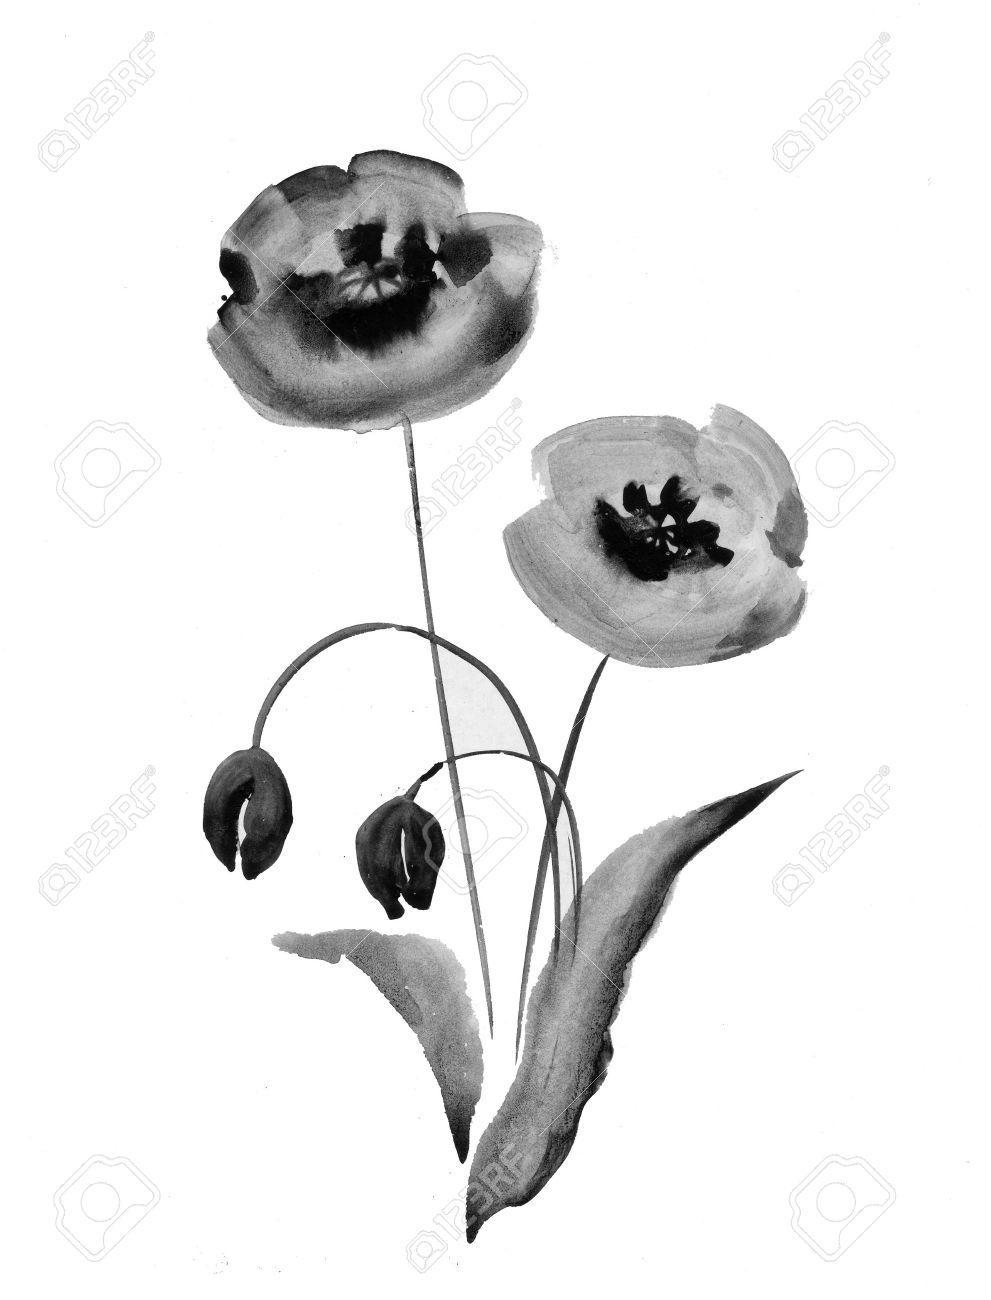 Poppy Flowers Watercolor Illustration In Black And White Stock